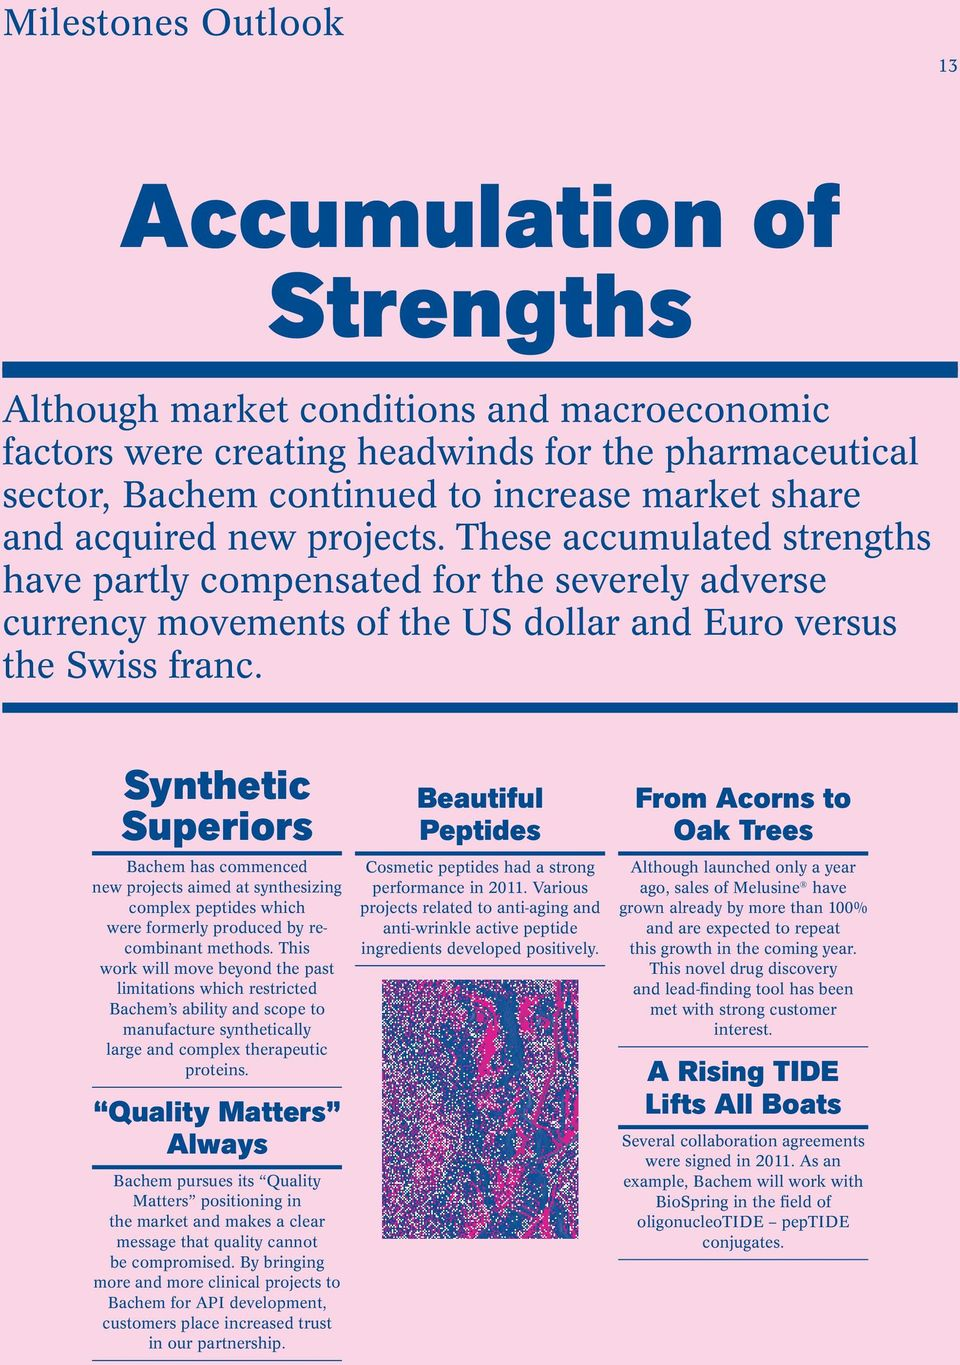 These accumulated strengths have partly compensated for the severely adverse currency movements of the US dollar and Euro versus the Swiss franc.